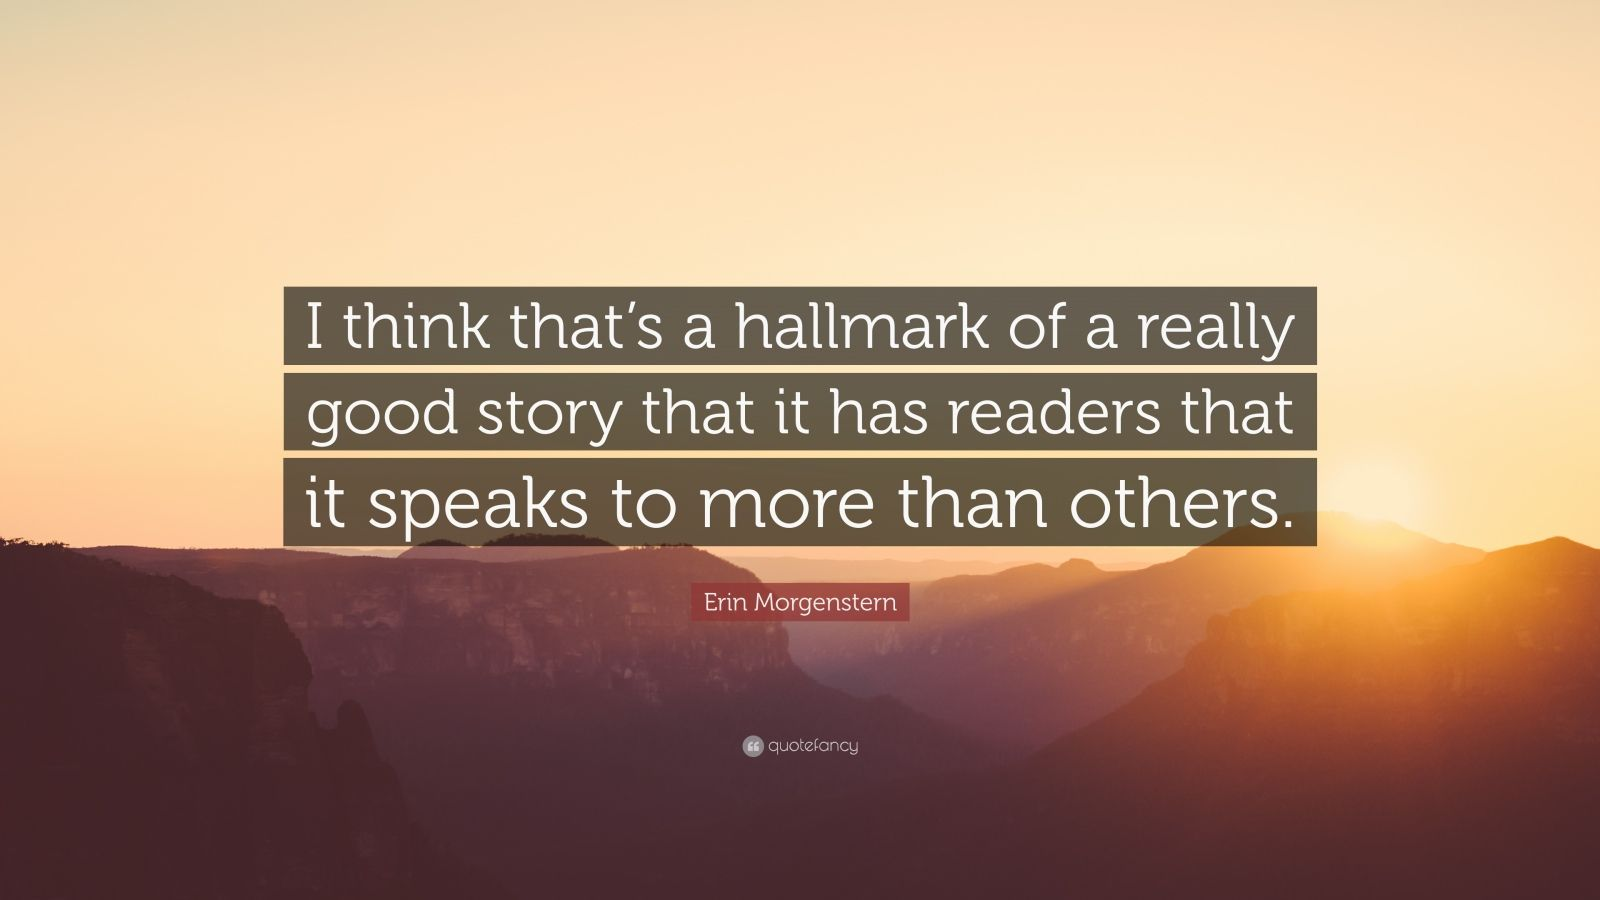 """Erin Morgenstern Quote: """"I think that's a hallmark of a really good story that it has readers that it speaks to more than others."""""""